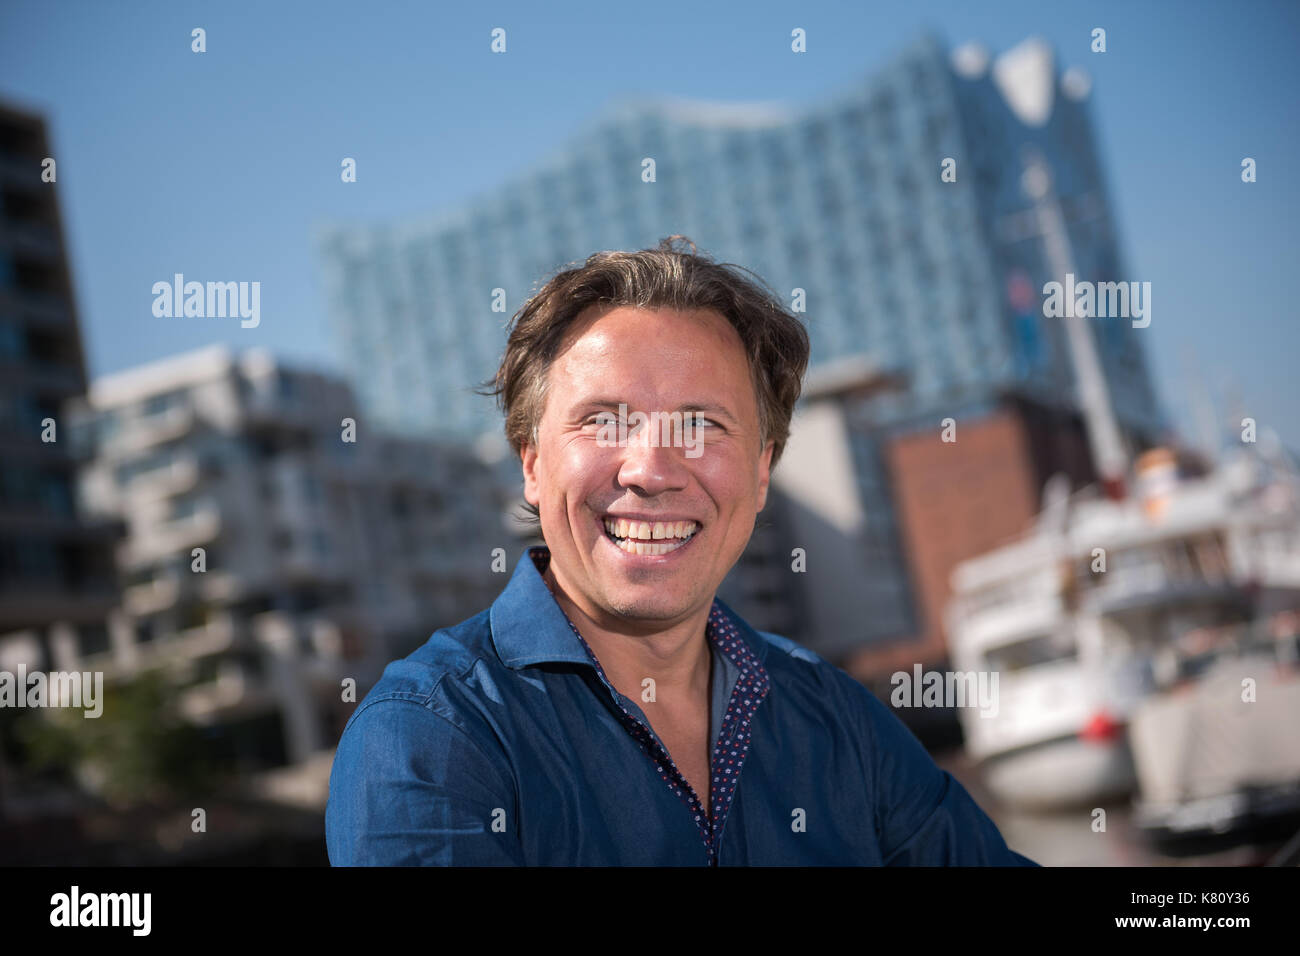 Hamburg, Germany. 29th Aug, 2017. dpa Exclusive - Pianist and conductor Kristjan Jaervi pictured at HafenCity in Hamburg, Germany, 29 August 2017. The Elbphilharmonie (Elbe Philharmonic Hall) can be seen in the background. Photo: Daniel Bockwoldt/dpa/Alamy Live News - Stock Image